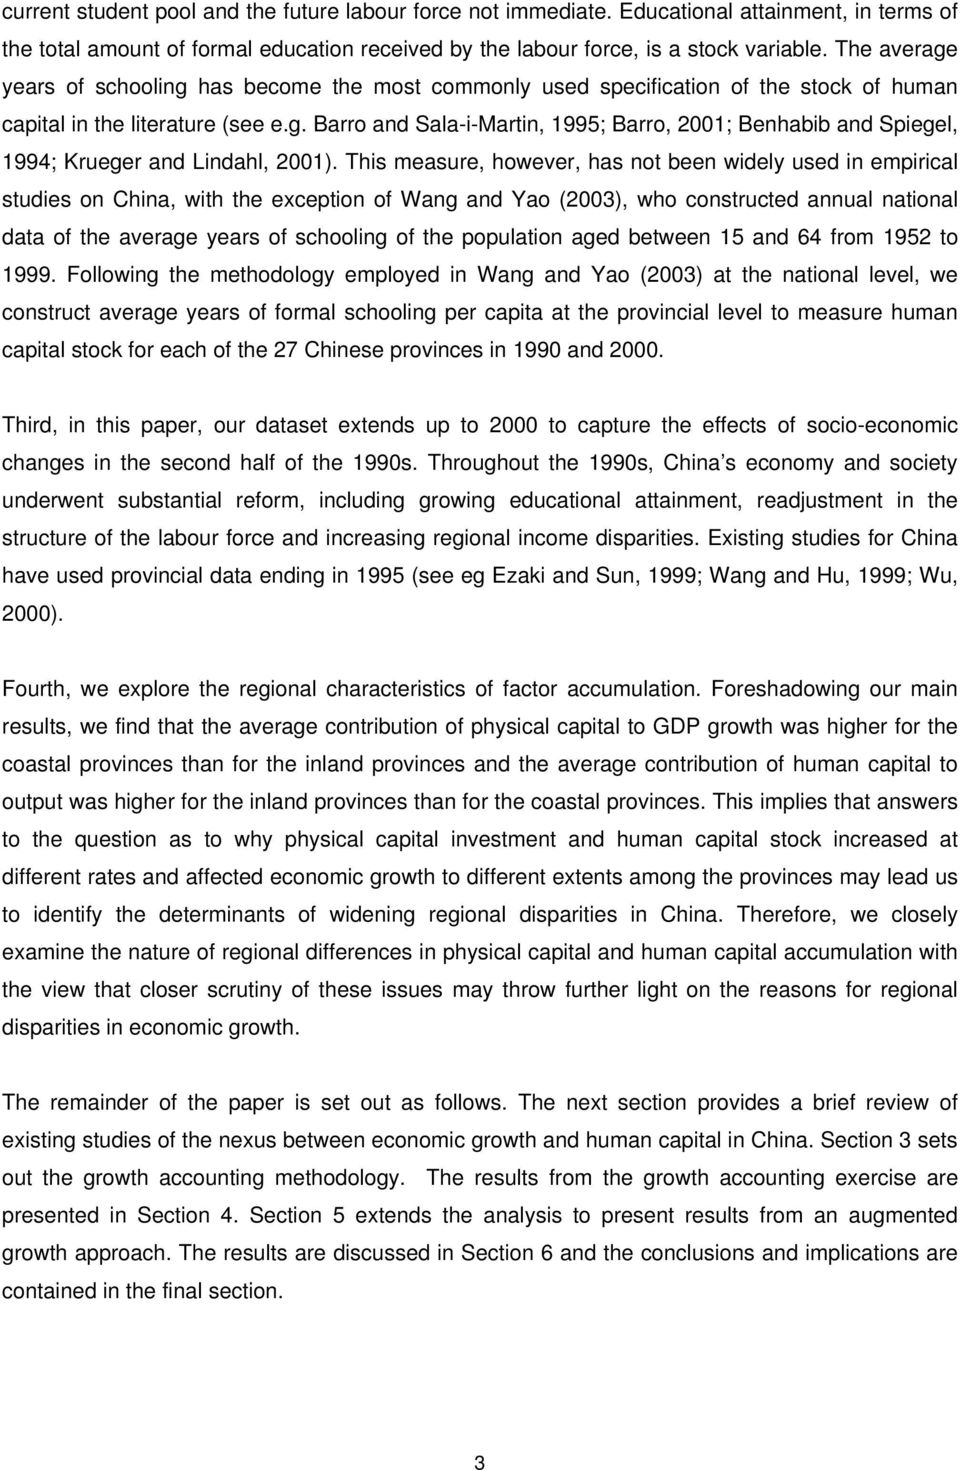 This measure, however, has not been widely used in empirical studies on China, with the exception of Wang and Yao (2003), who constructed annual national data of the average years of schooling of the